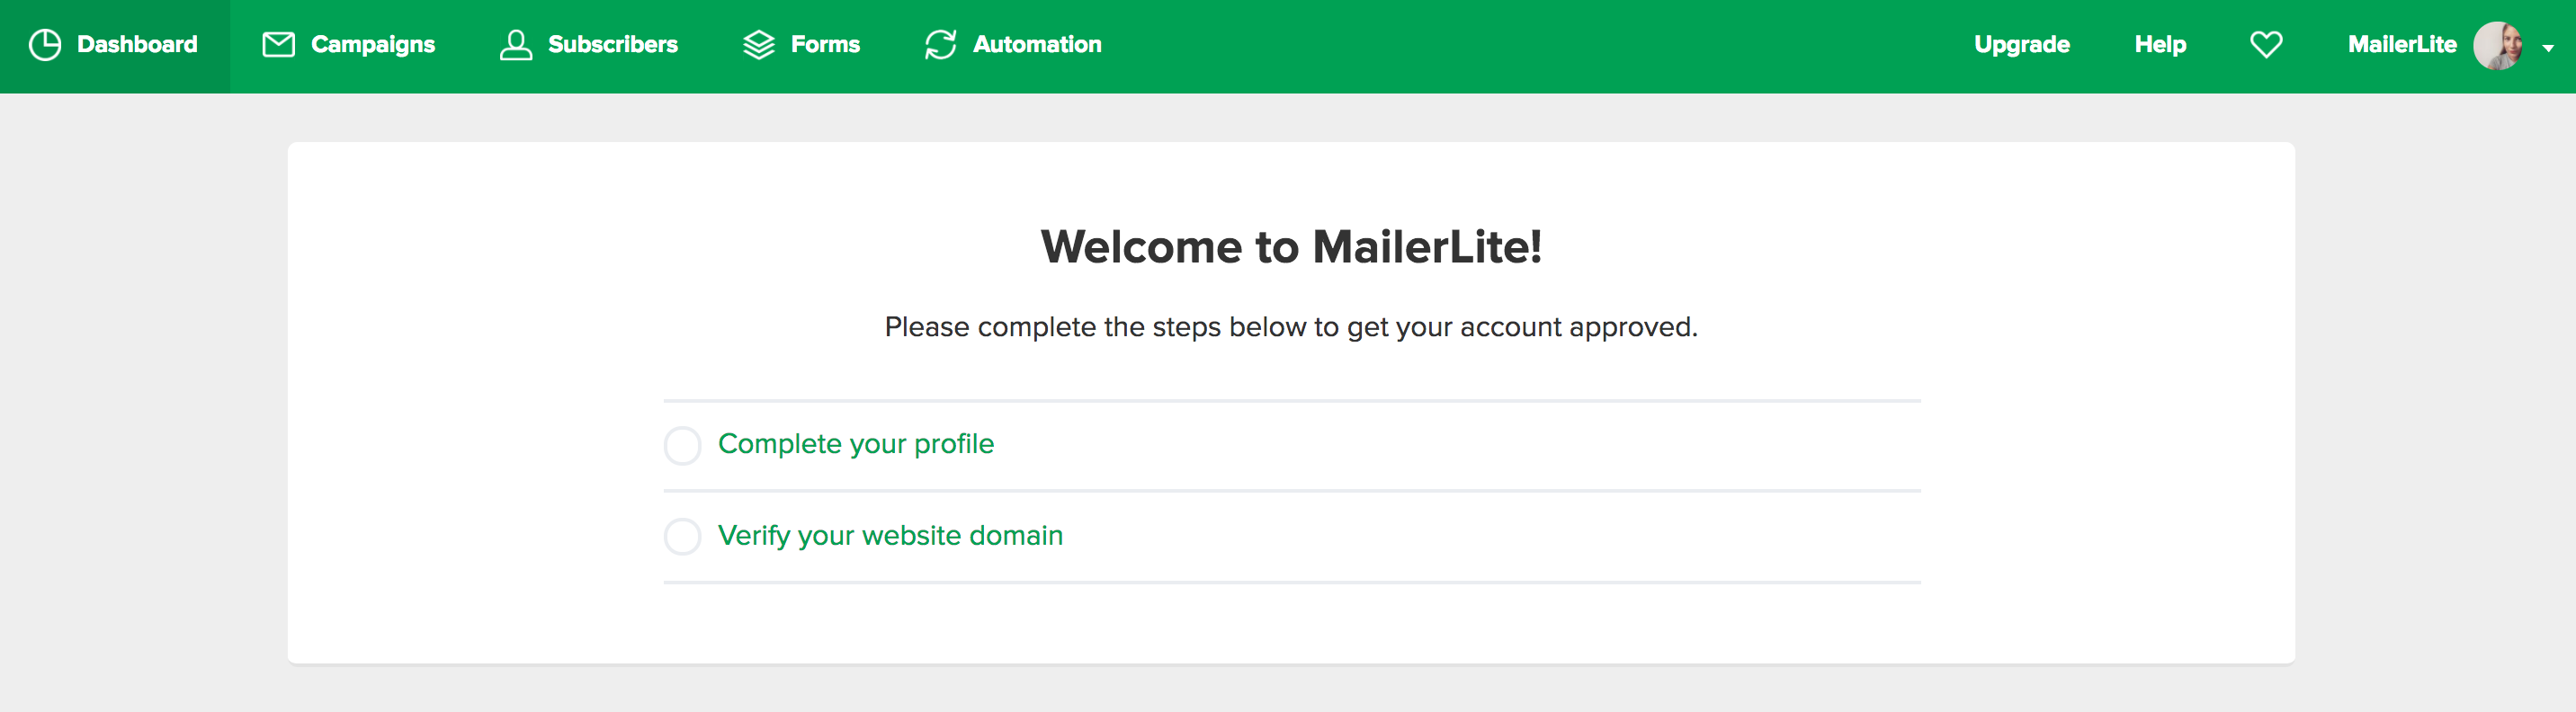 MailerLite - How to get approved